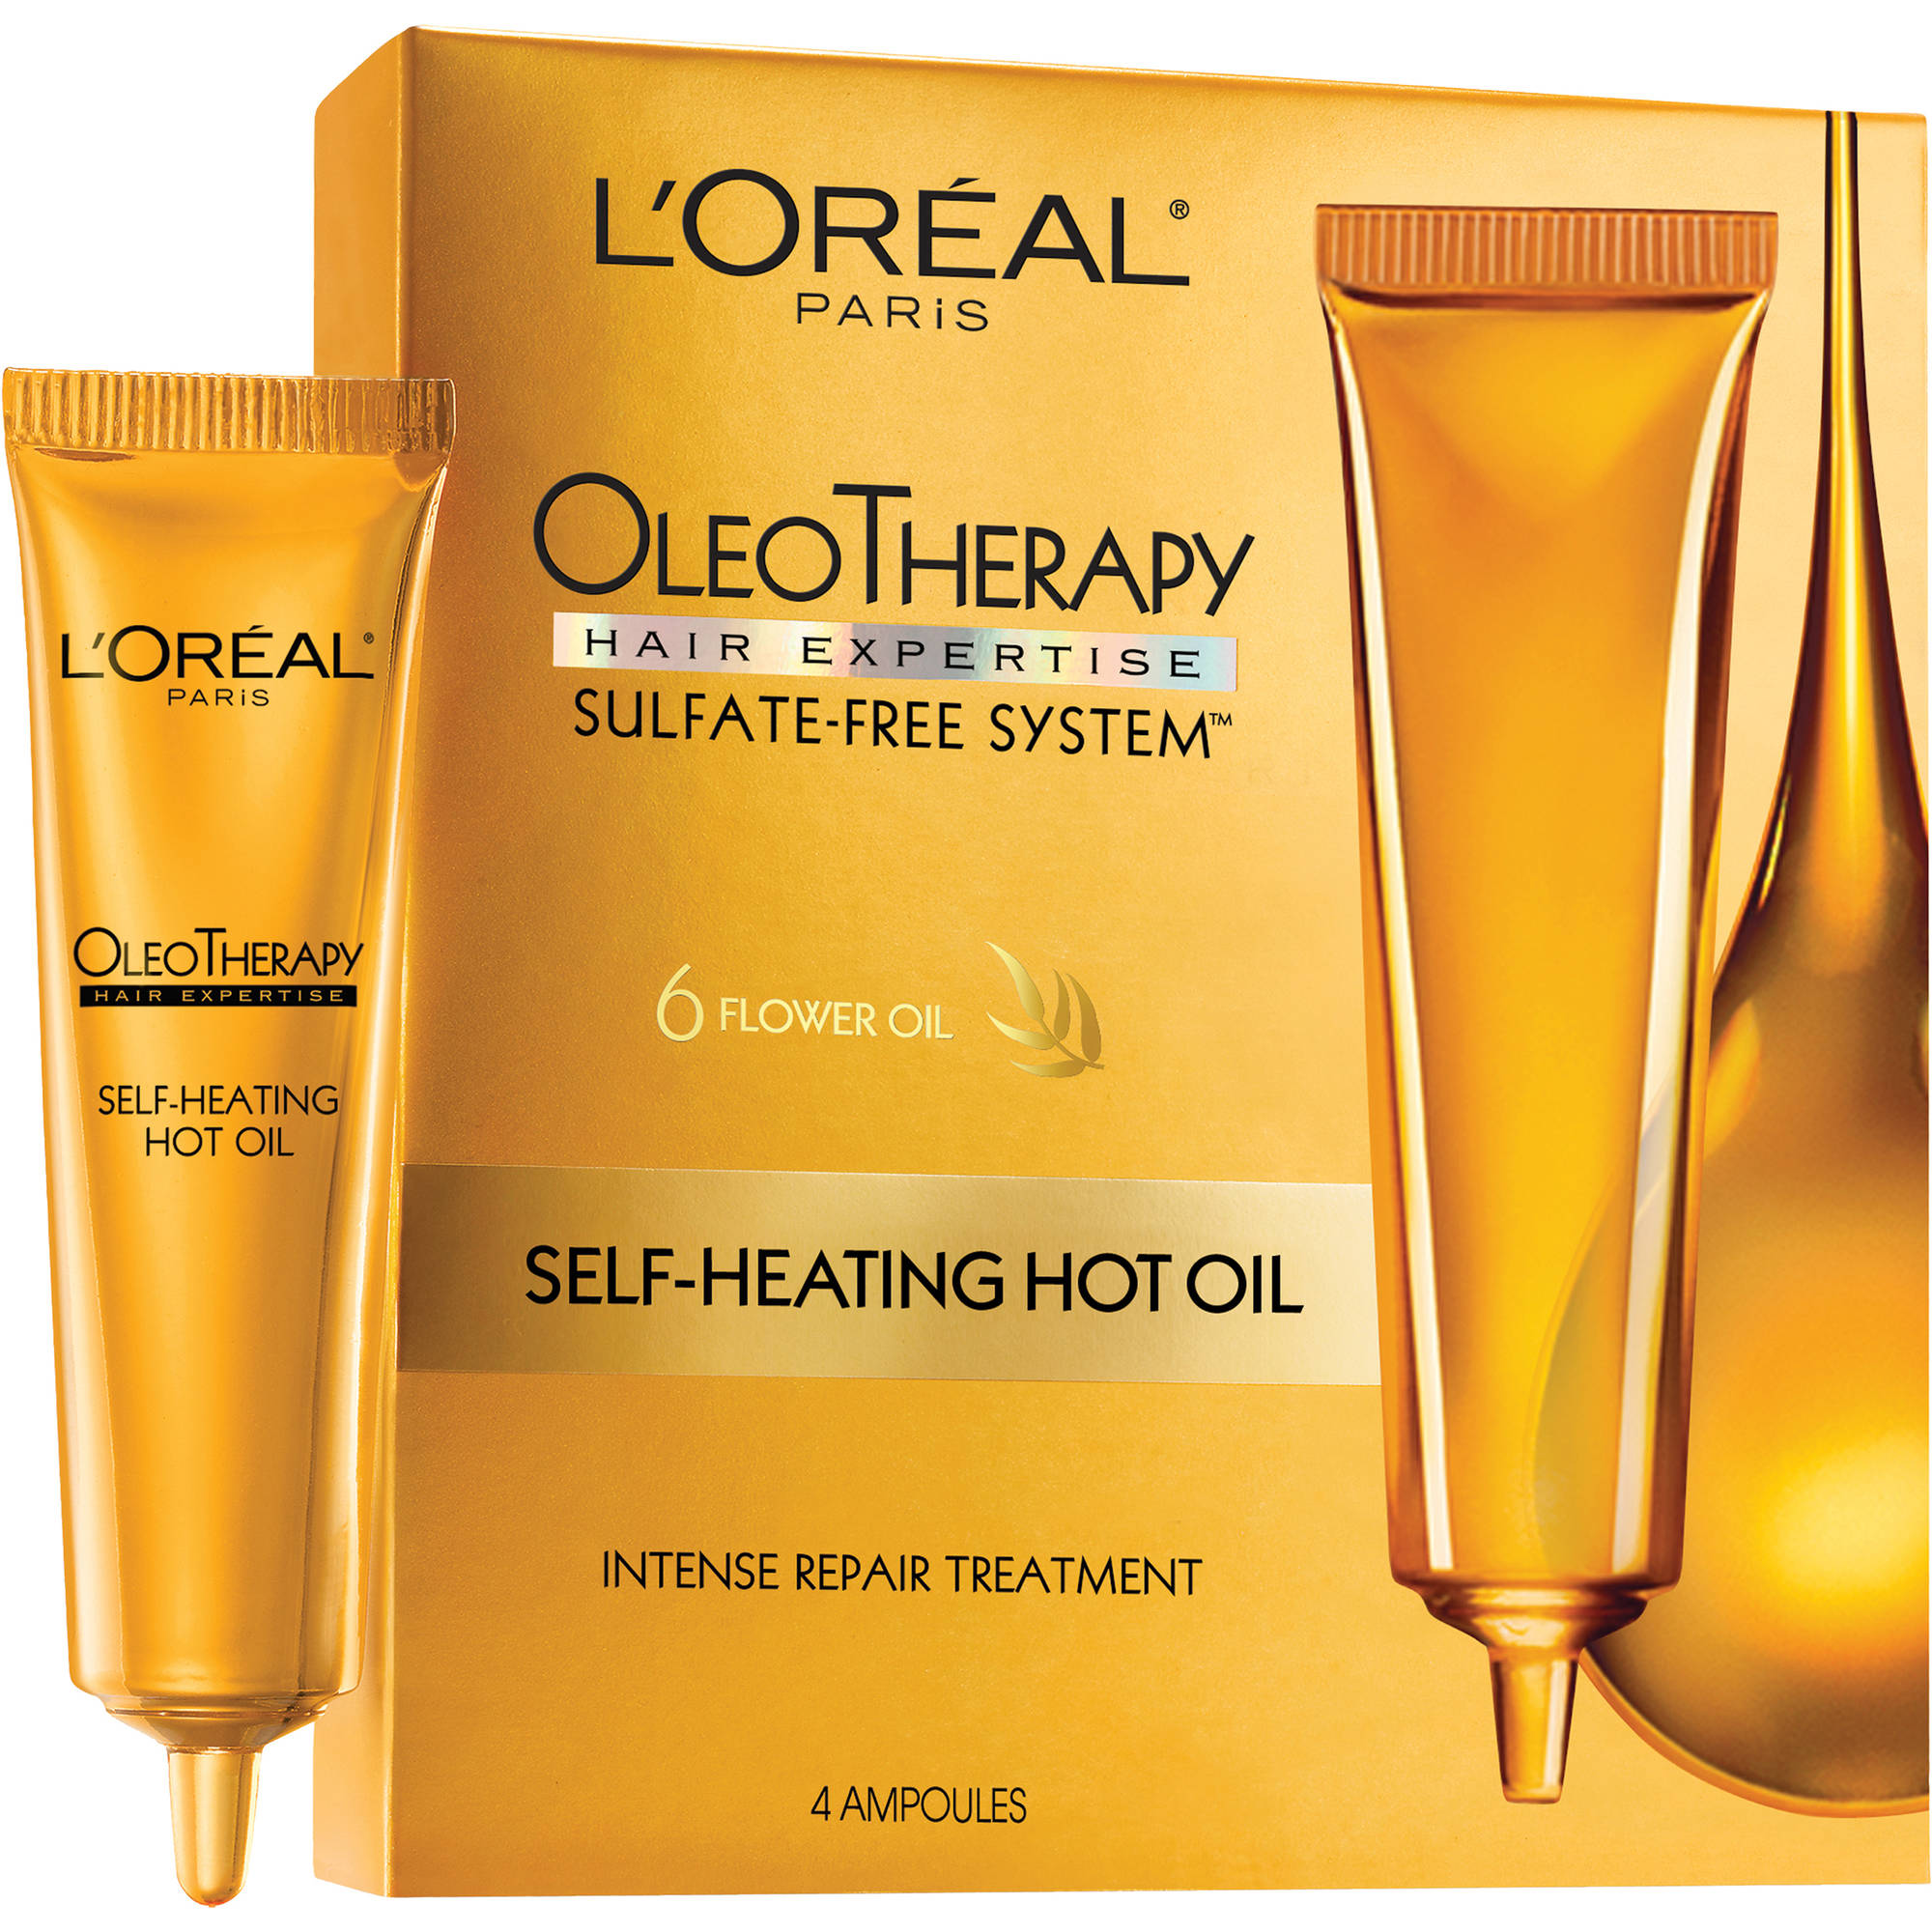 L'Oreal OleoTherapy Self-Heating Hot Oil Treatment Ampoules 1 ea